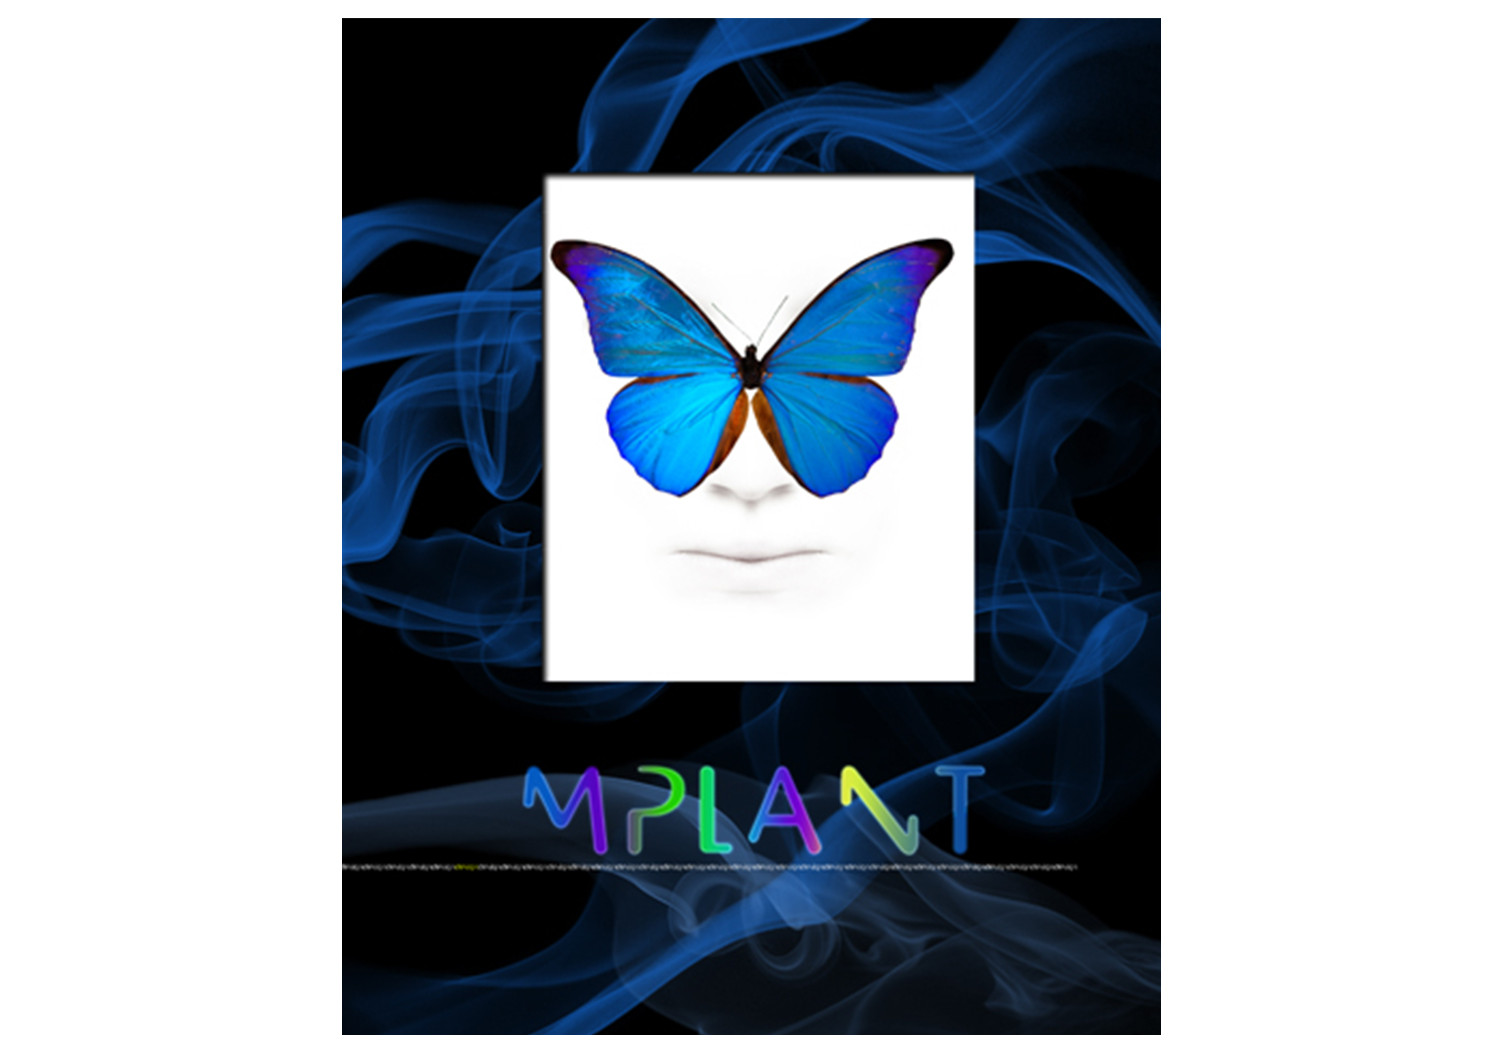 mPLant Poster